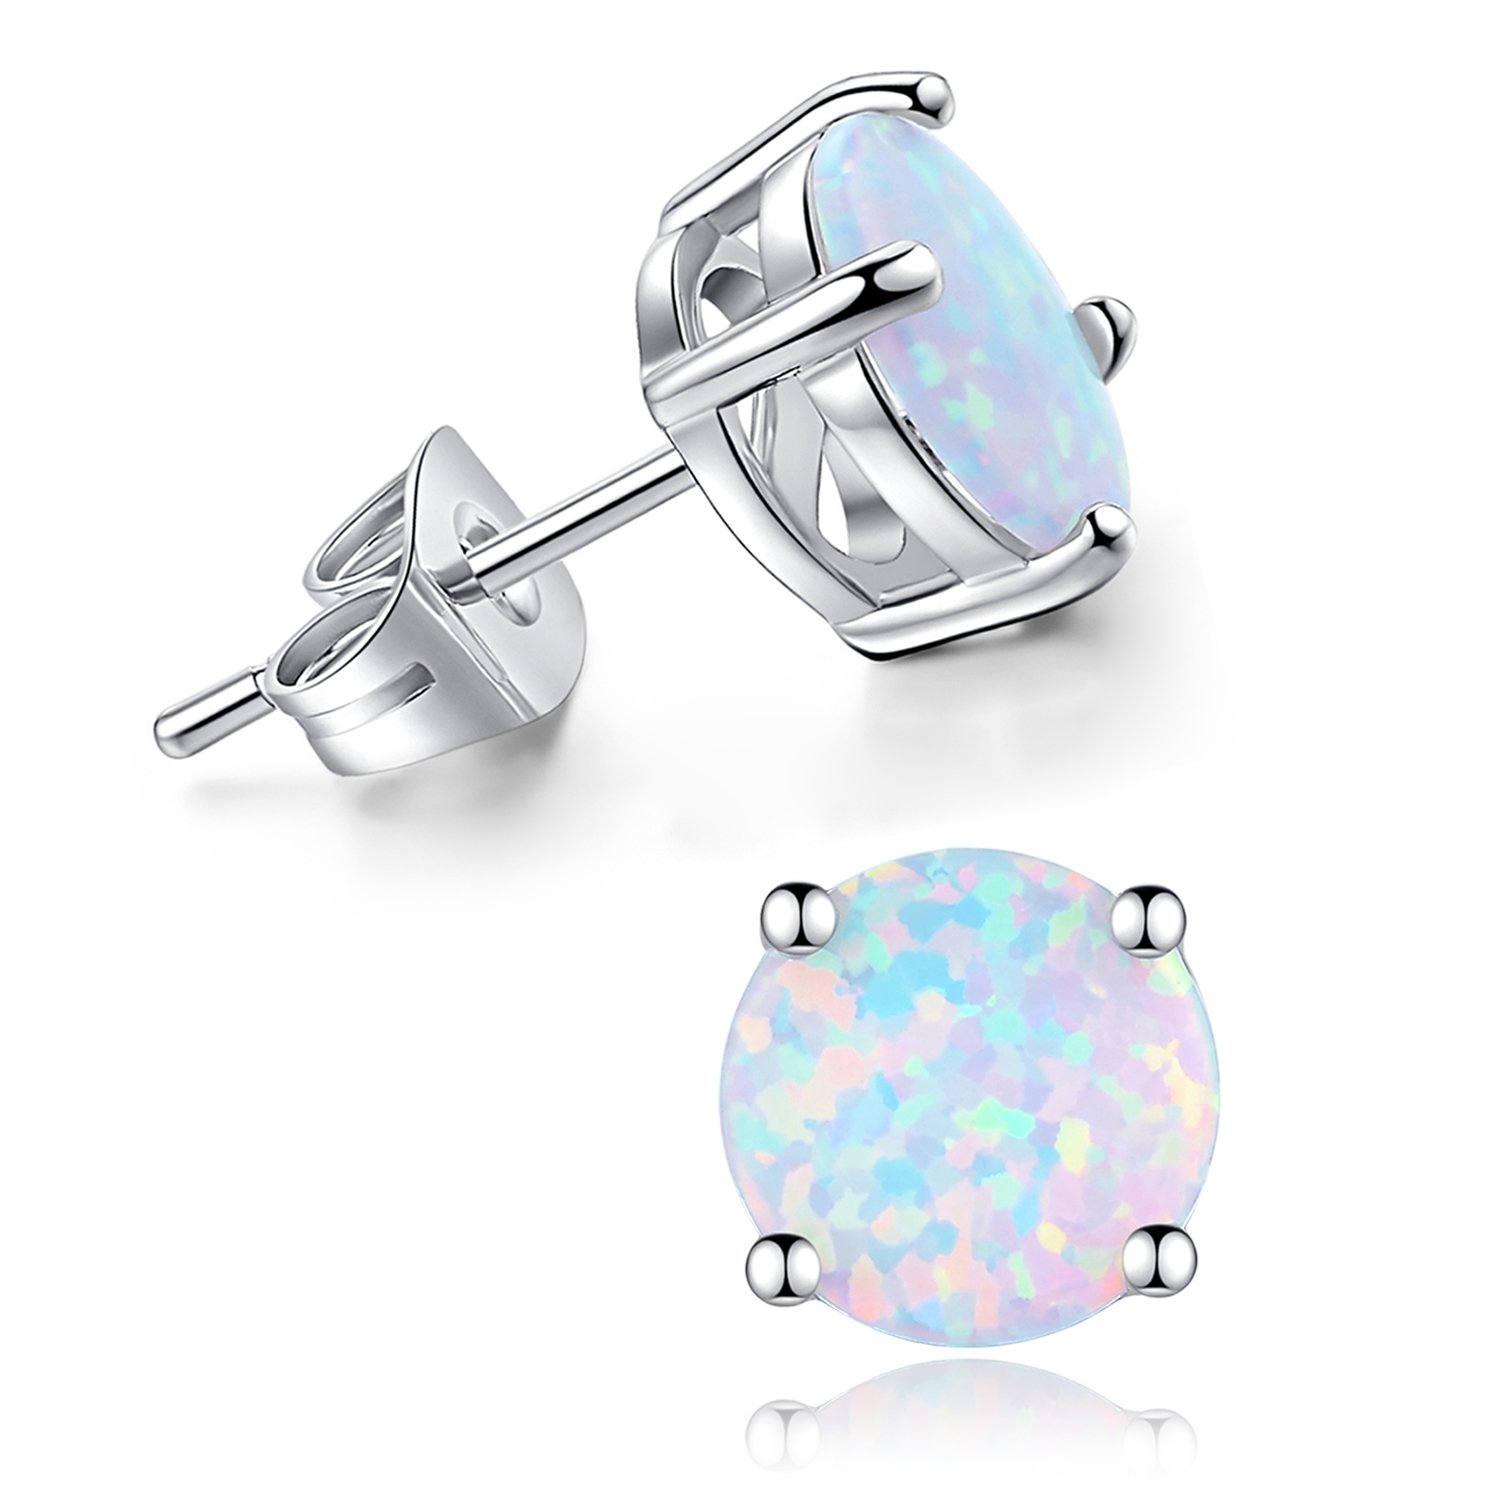 DESIMTION 18K Gold Plated Round White Fire Opal Stud Earrings for Women Girls 6mm 8mm (8 mm)